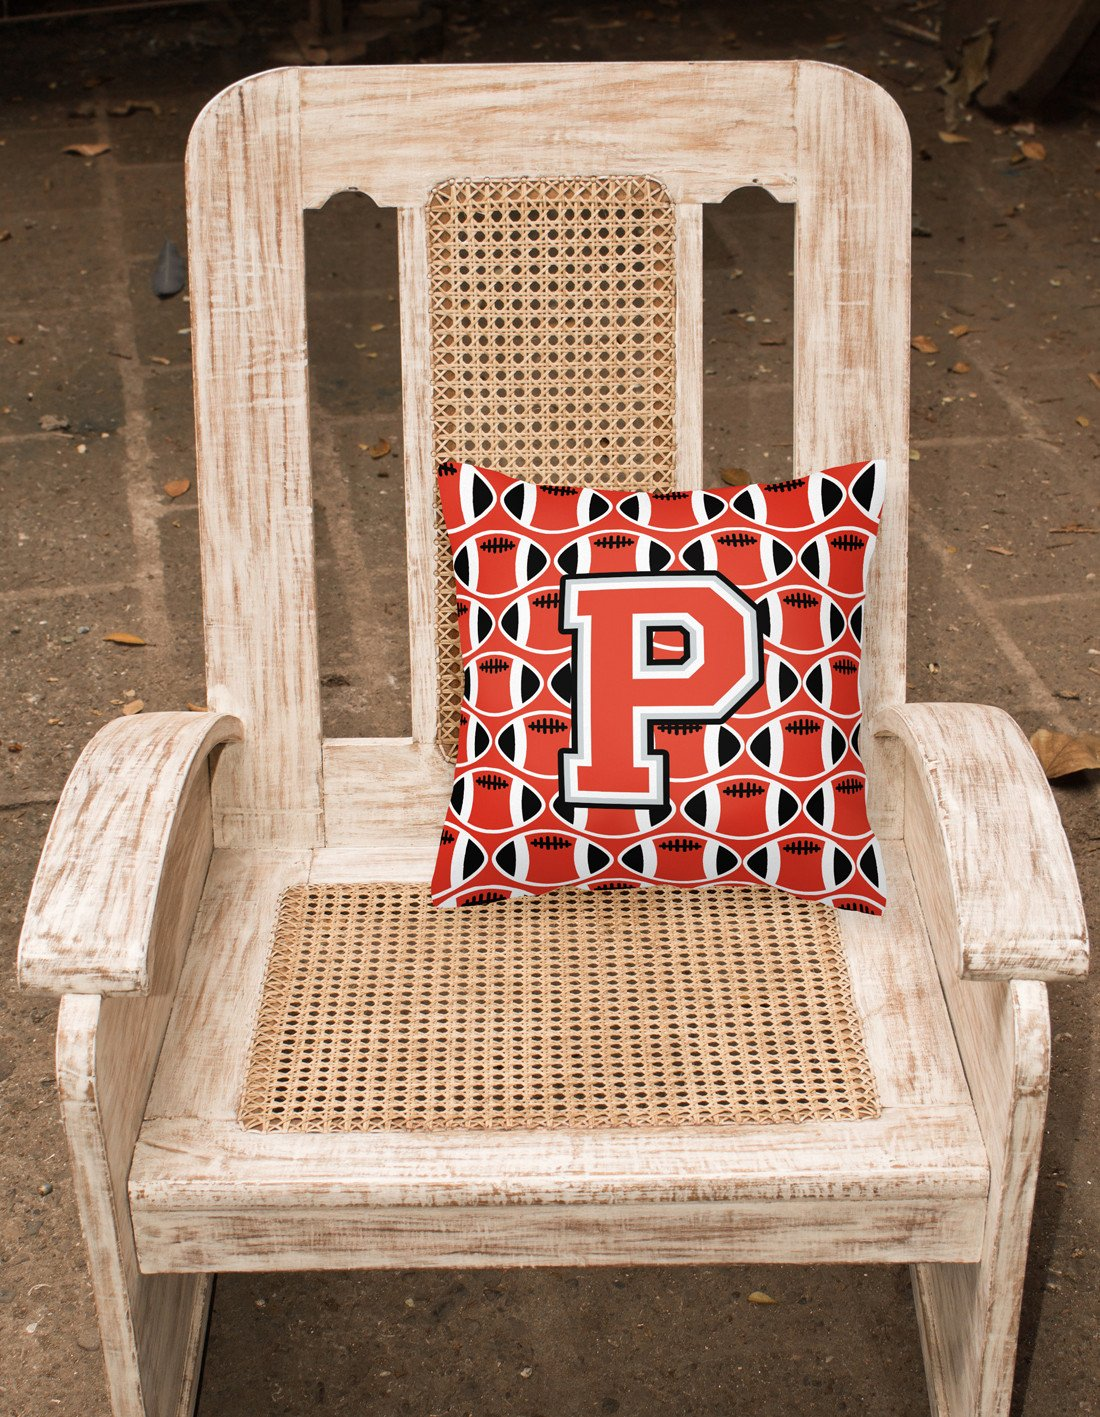 Letter P Football Scarlet and Grey Fabric Decorative Pillow CJ1067-PPW1414 by Caroline's Treasures